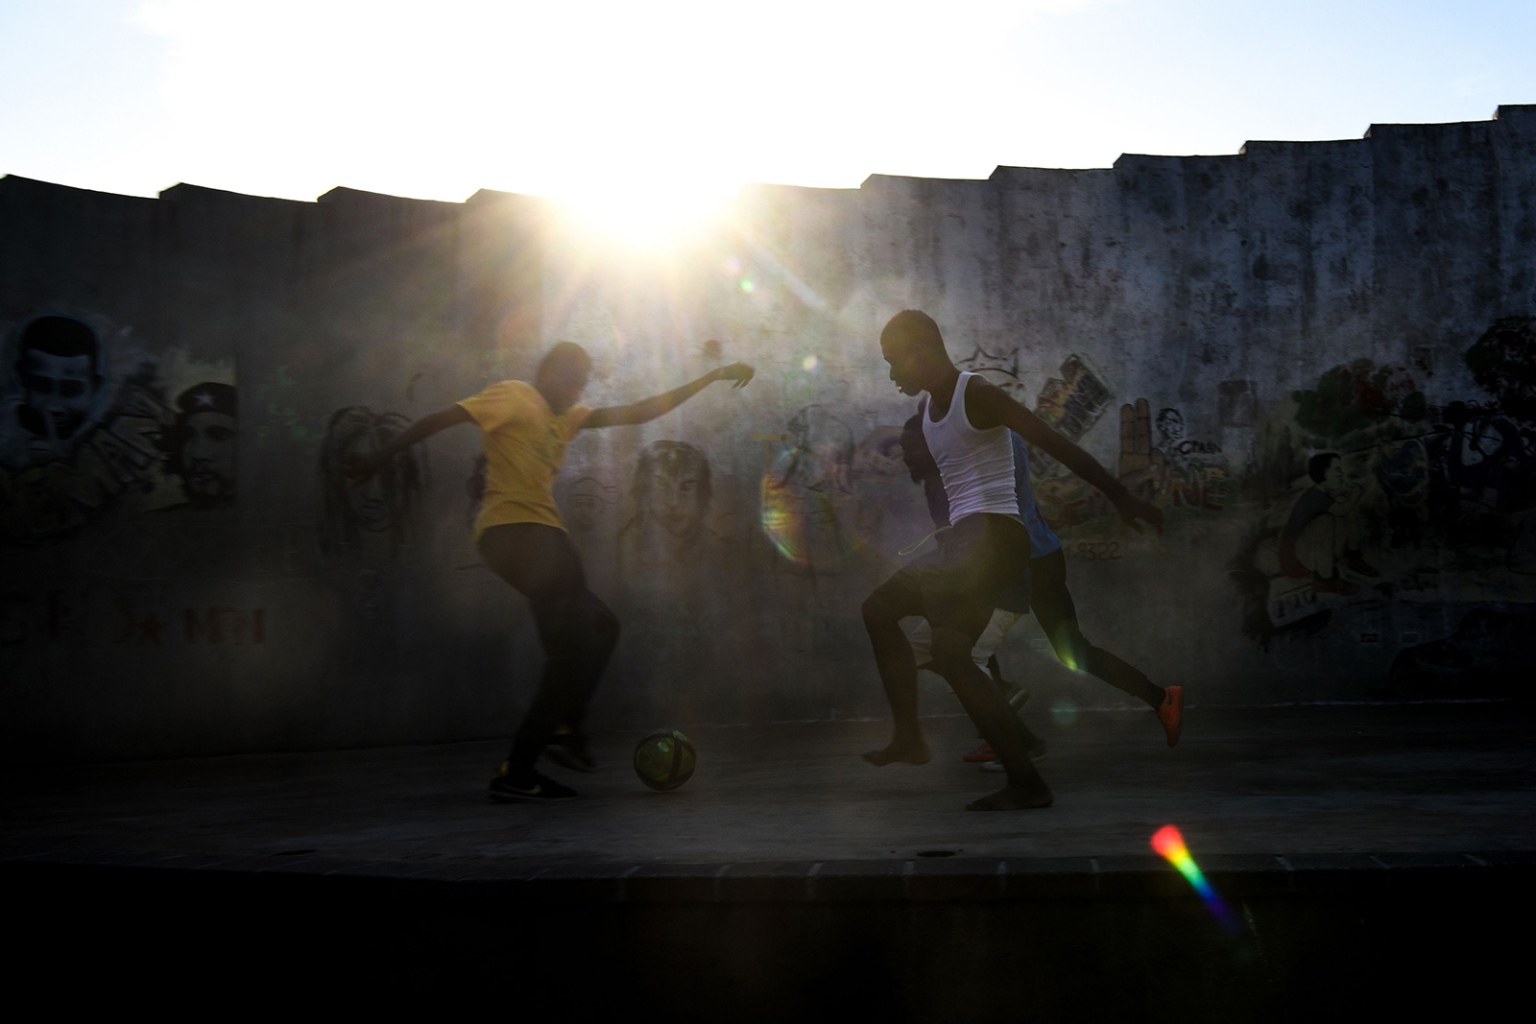 People play soccer in the Haitian capital Port-au-Prince on April 10. CHANDAN KHANNA/AFP/Getty Images